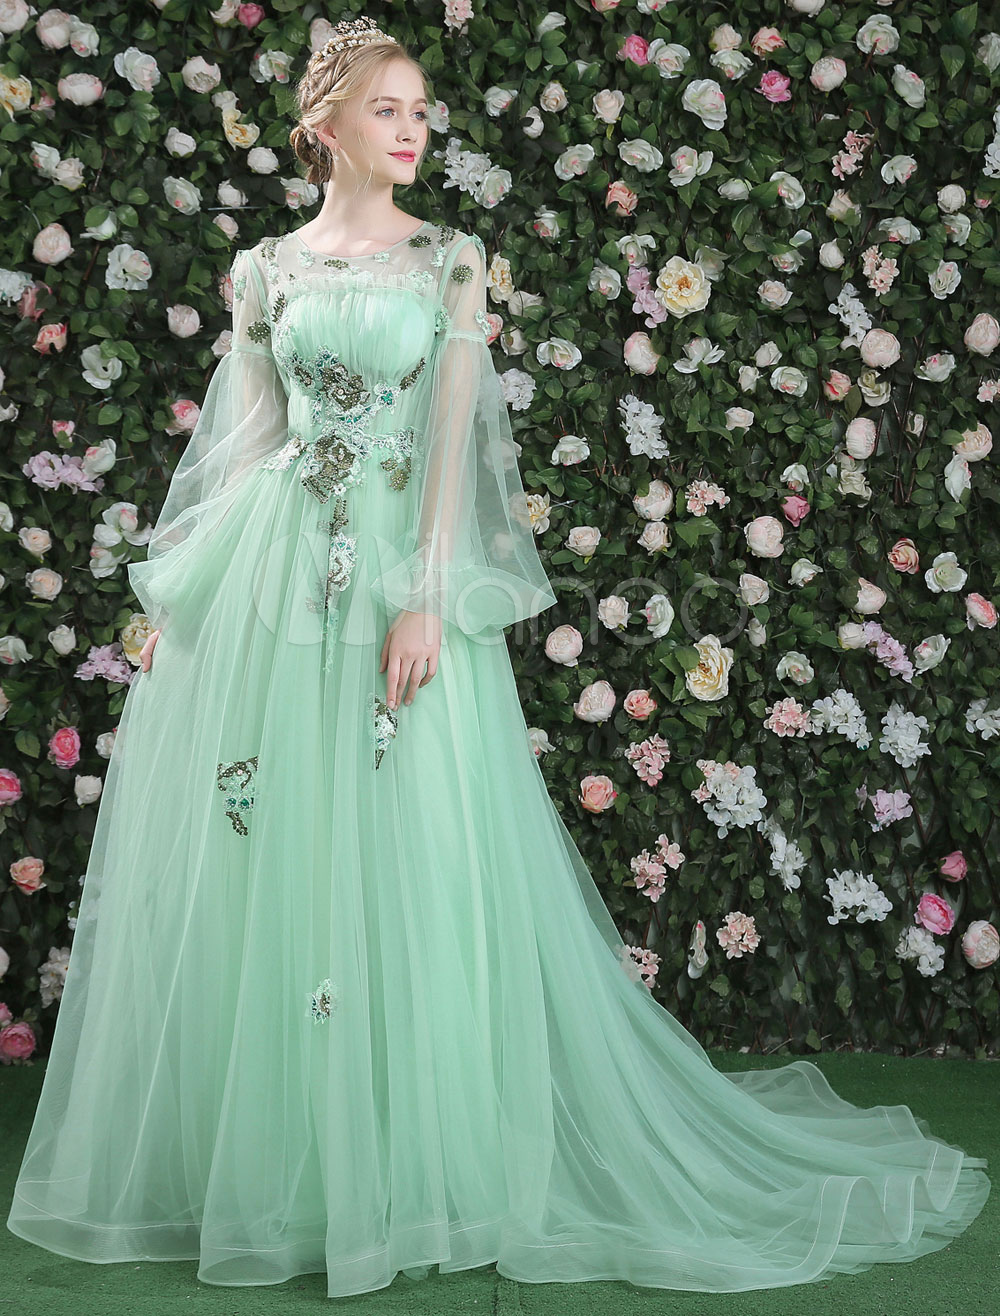 Luxury Prom Dresses Long Sleeve Flowers Embroidered Pastel Green ...